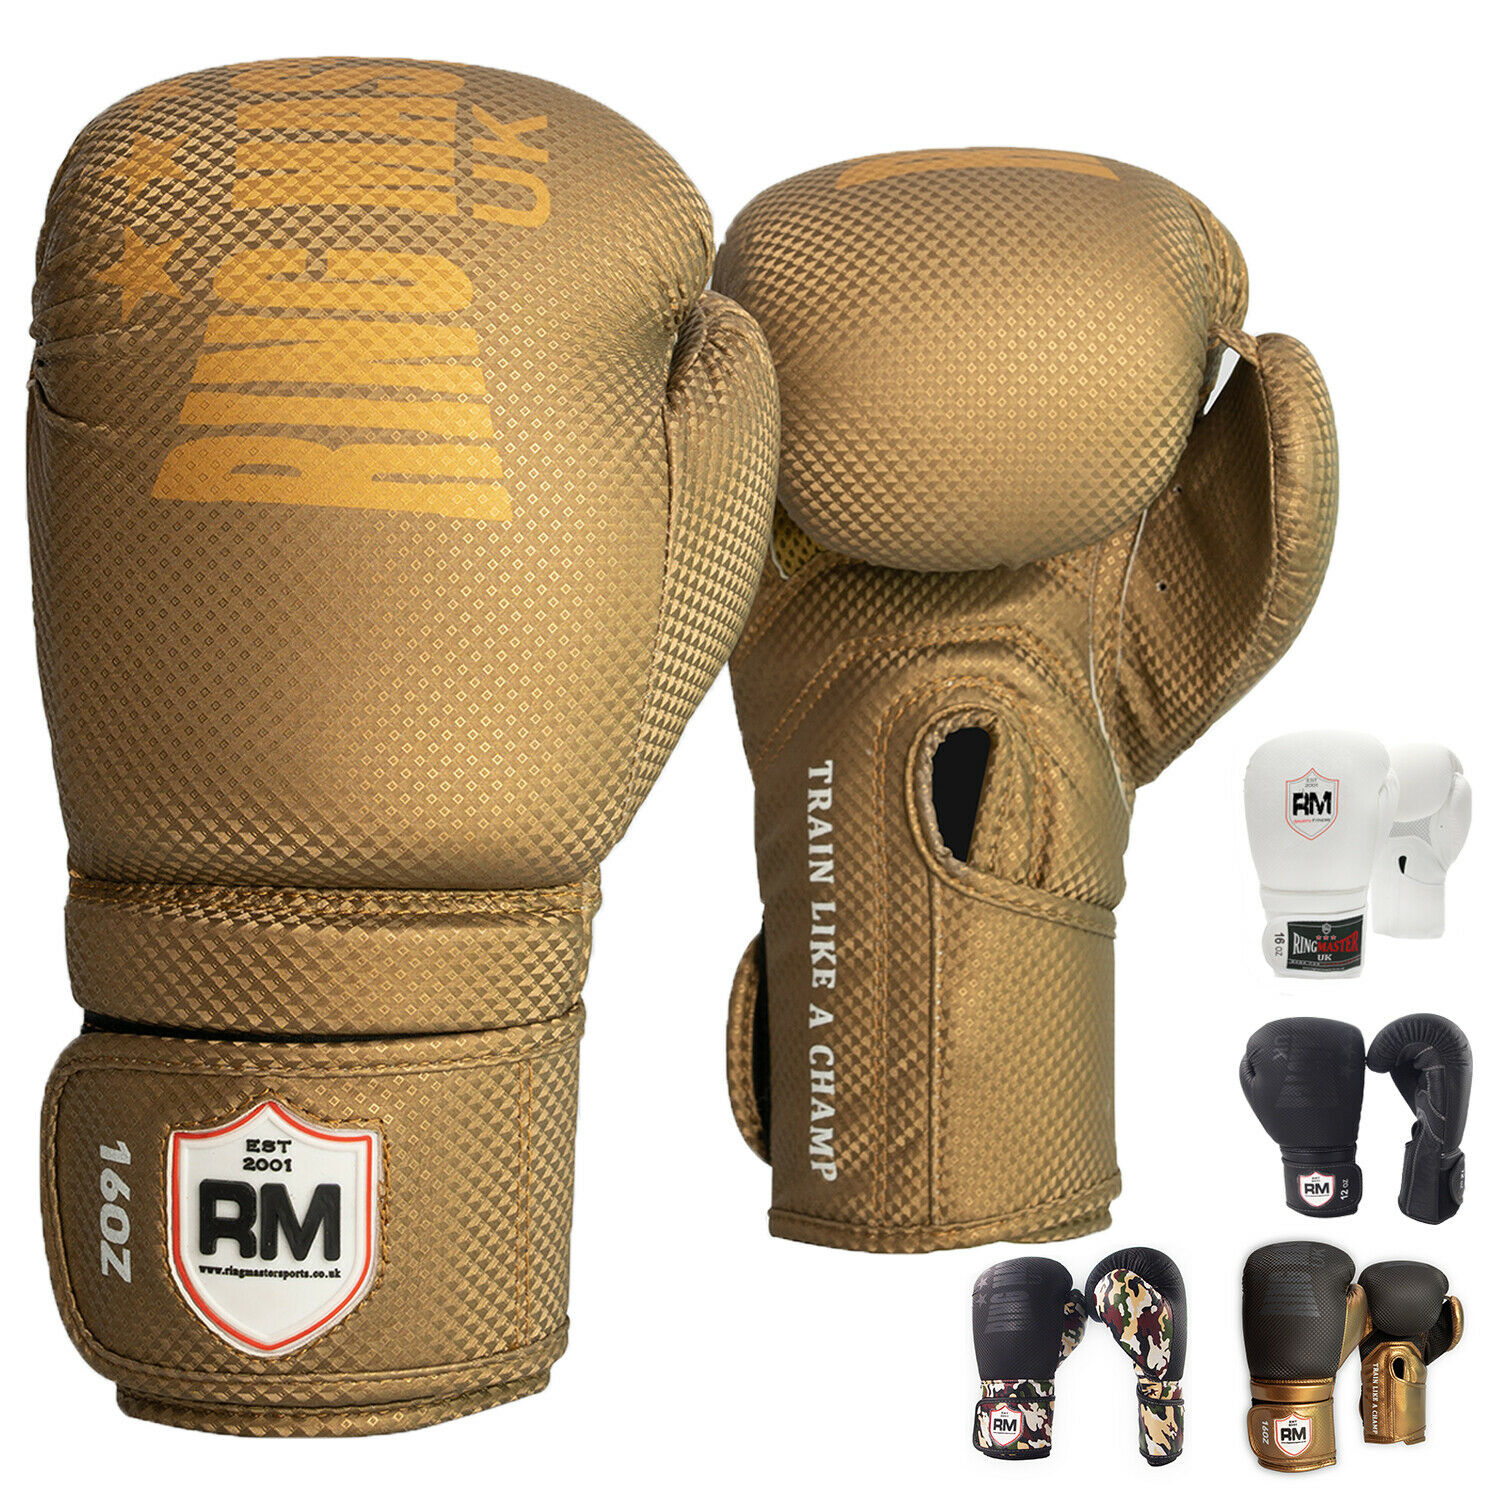 RingMaster Boxing G s Cobra Series Training Sparring MMA Fight UFC Punch